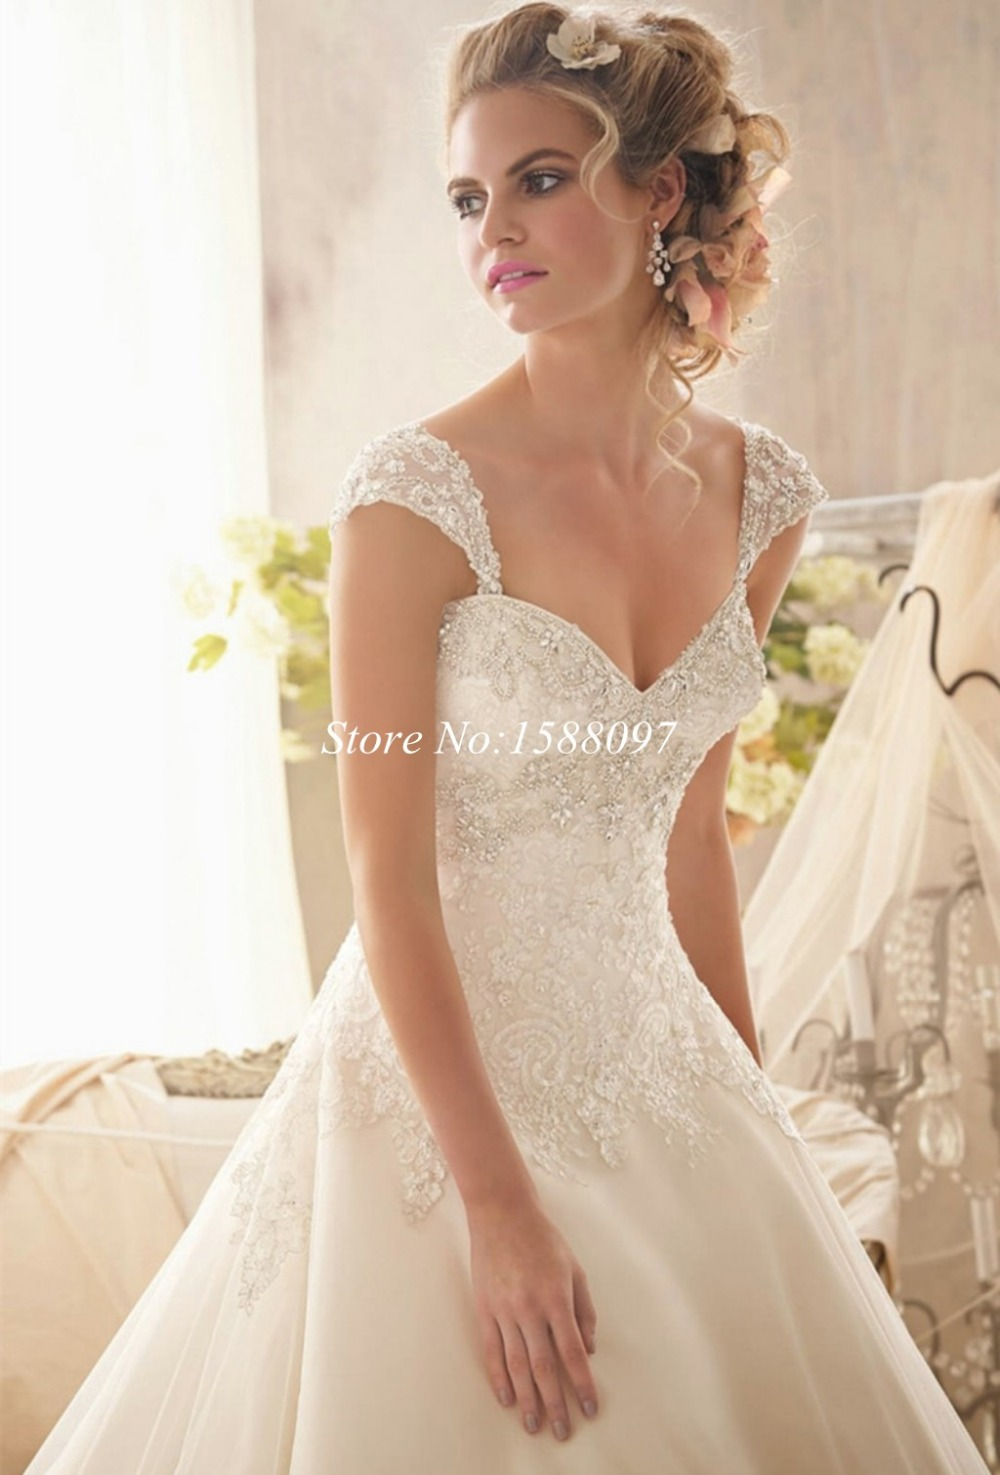 New designed 2015 beaded lace wedding gowns ivory cap sleeve ...